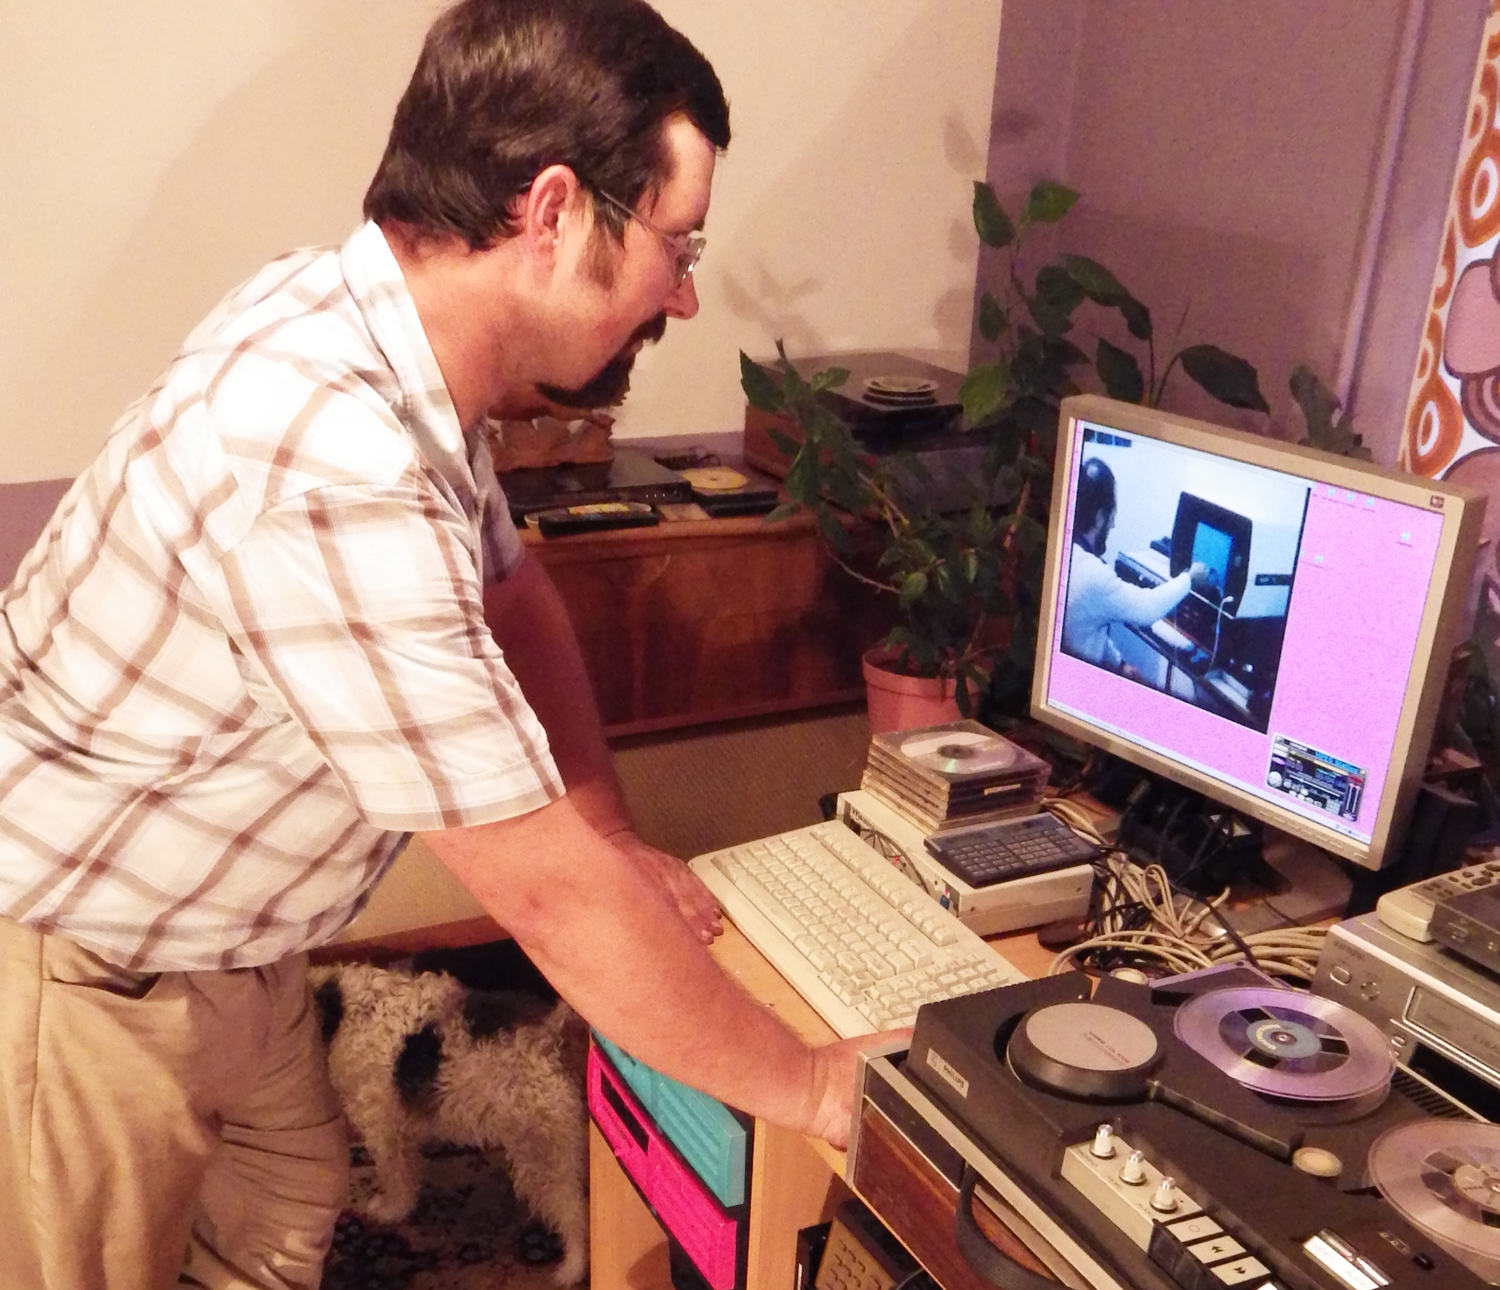 Digitize early 70s reel-to-reel video tape